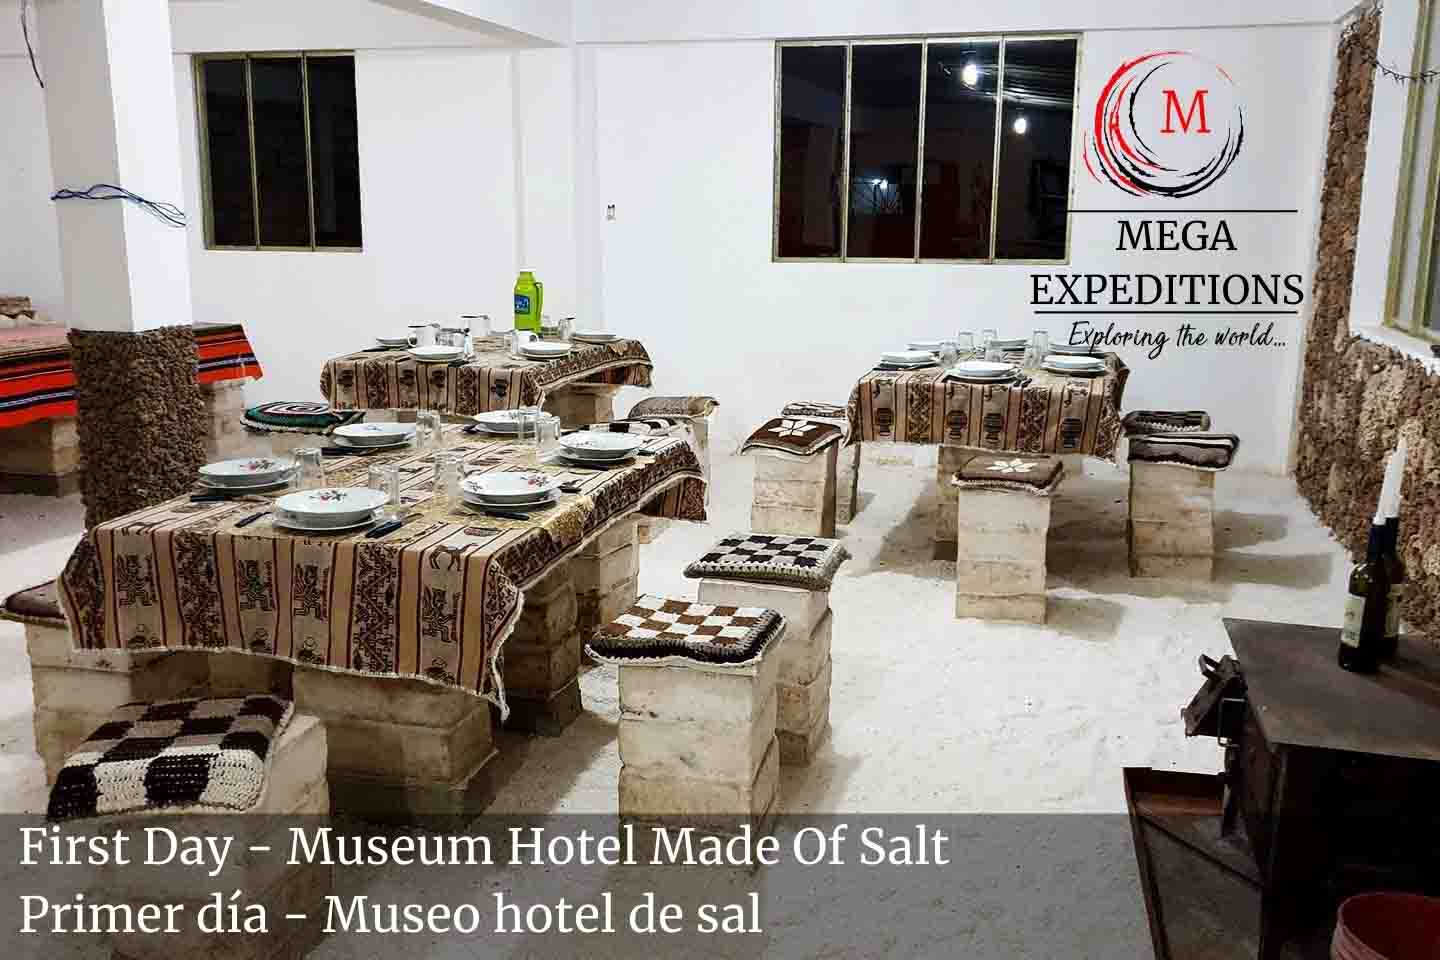 First Day - Museum Hotel Made Of Salt in the salt flat of bolivia